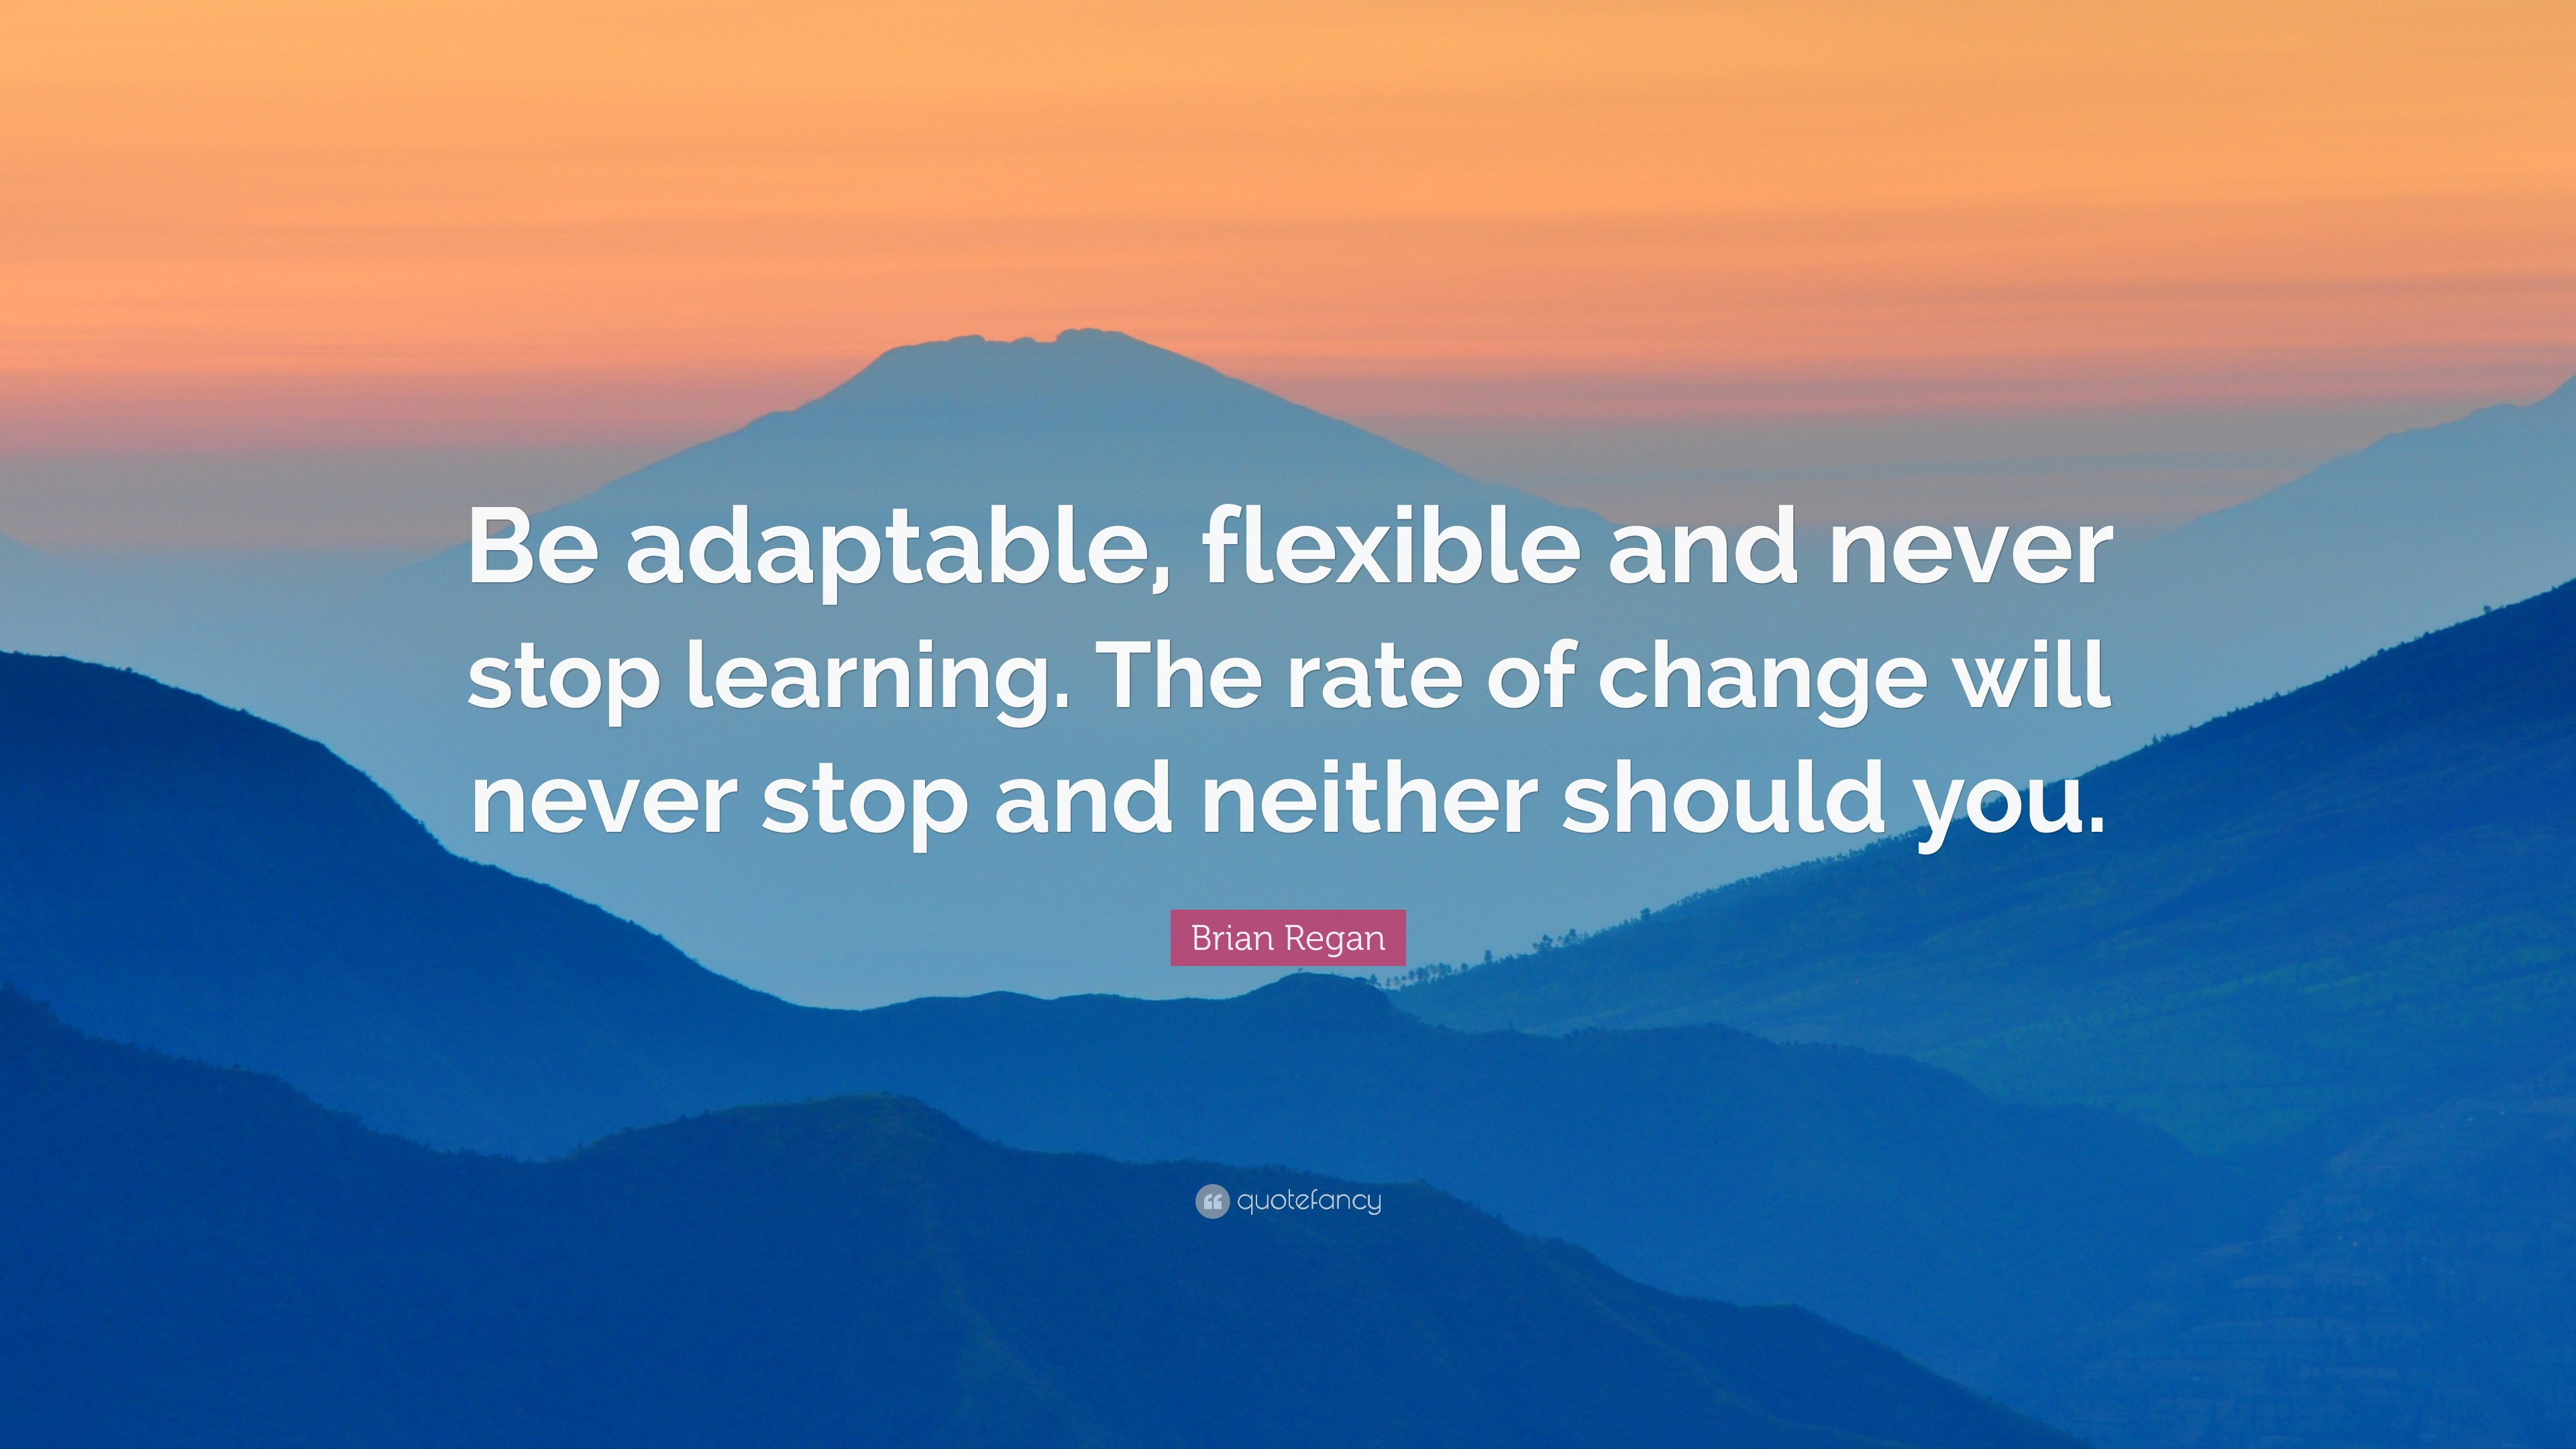 brian regan quote be adaptable flexible and never stop learning